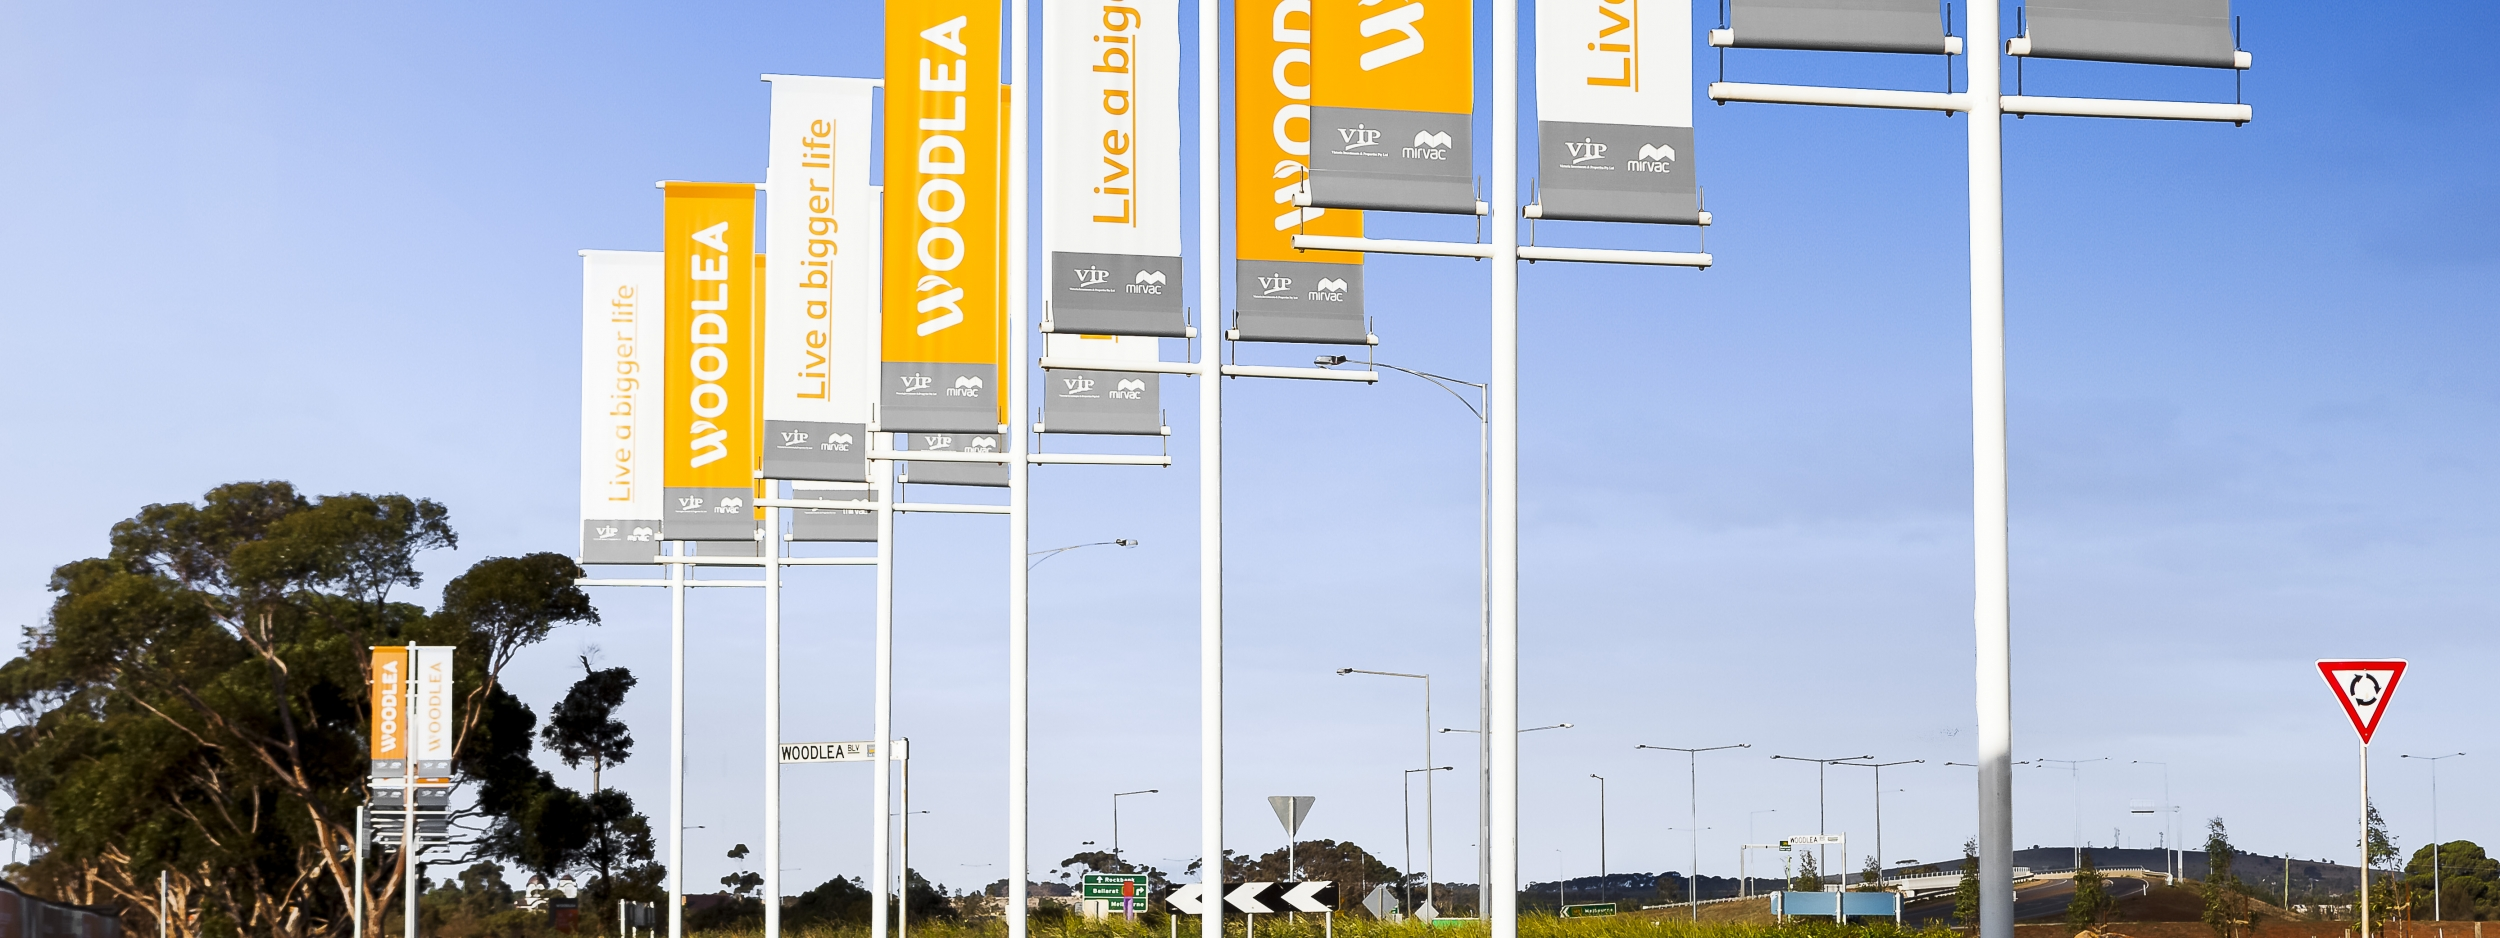 Woodlea Development Signage